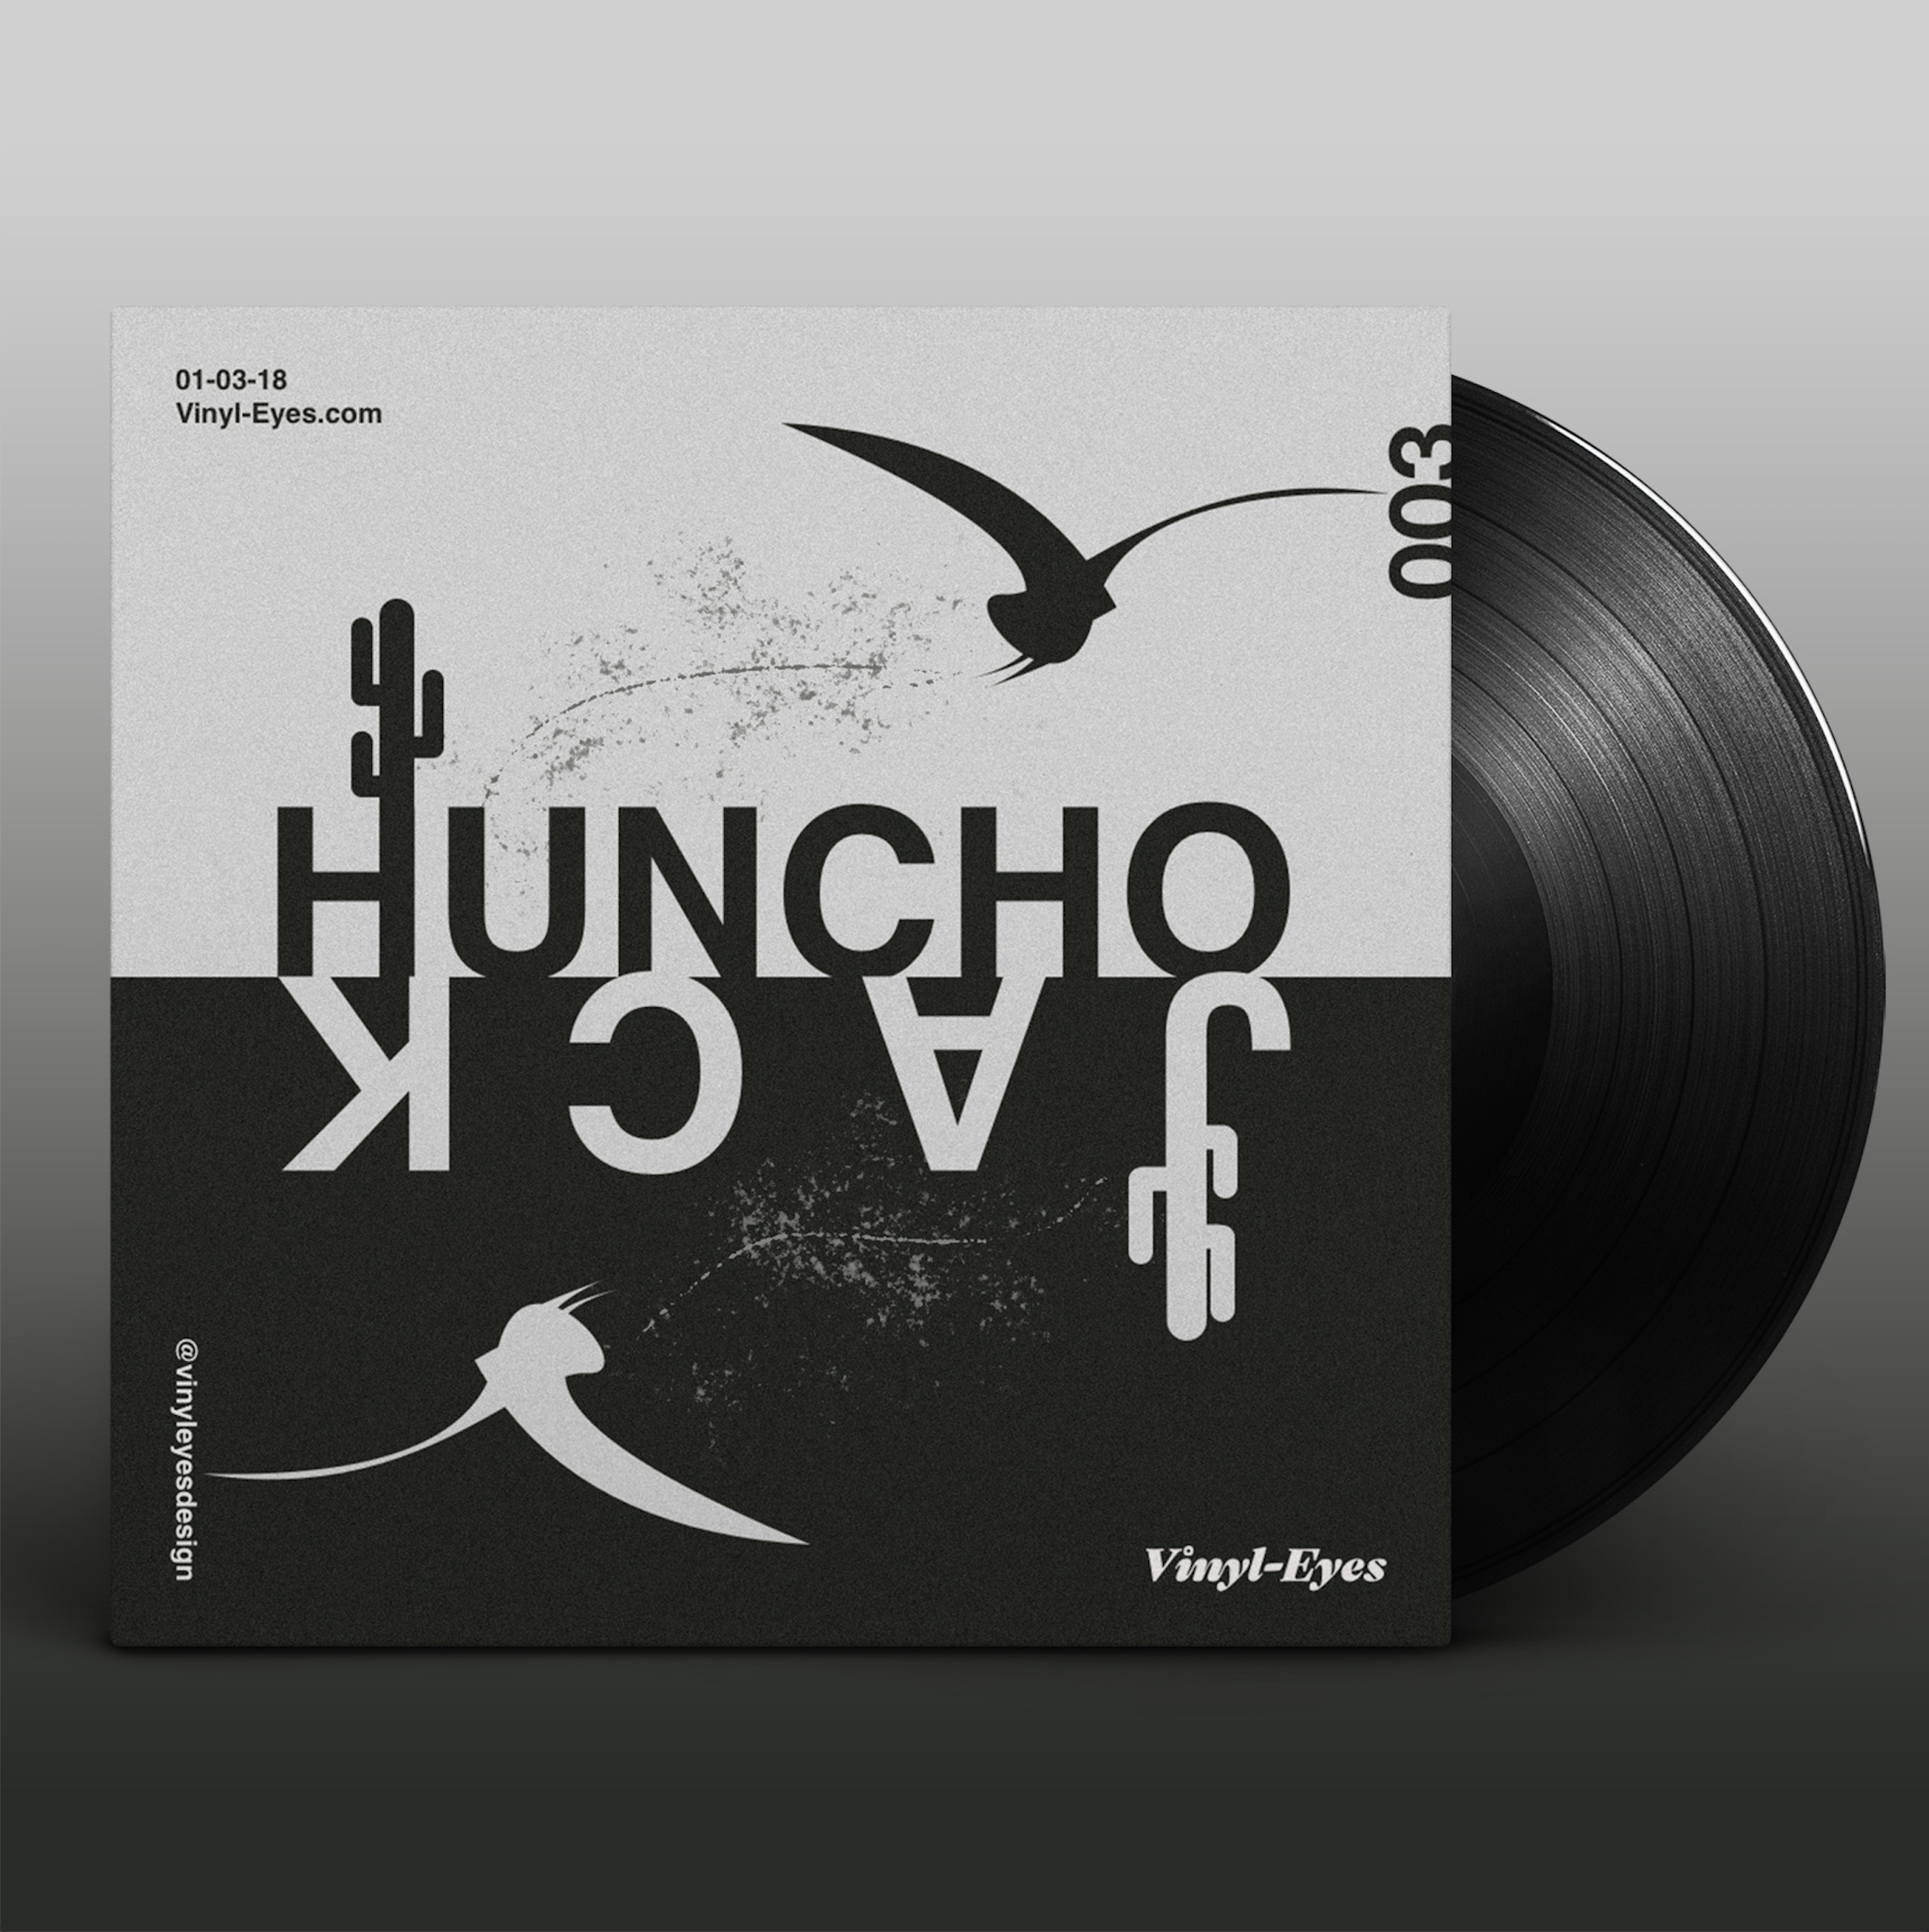 Vinyl Artwork Inspired By The Song Huncho Jack By Quavo And Travis Scott Vinyl Artwork Vinyl Songs